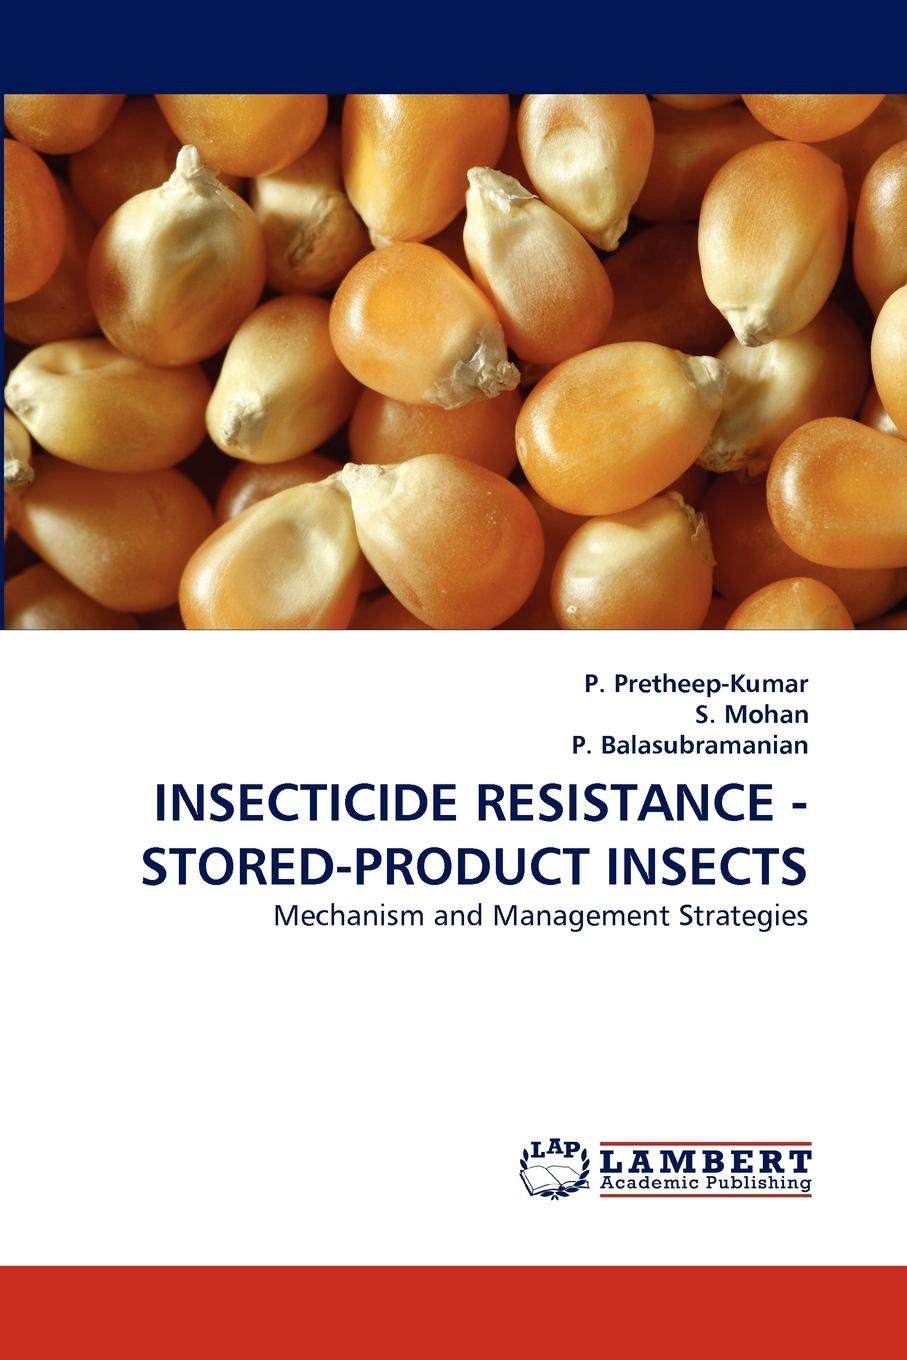 P. Pretheep-Kumar, S. Mohan, P. Balasubramanian Insecticide Resistance - Stored-Product Insects eco friendly management practices of insect pests in paddy